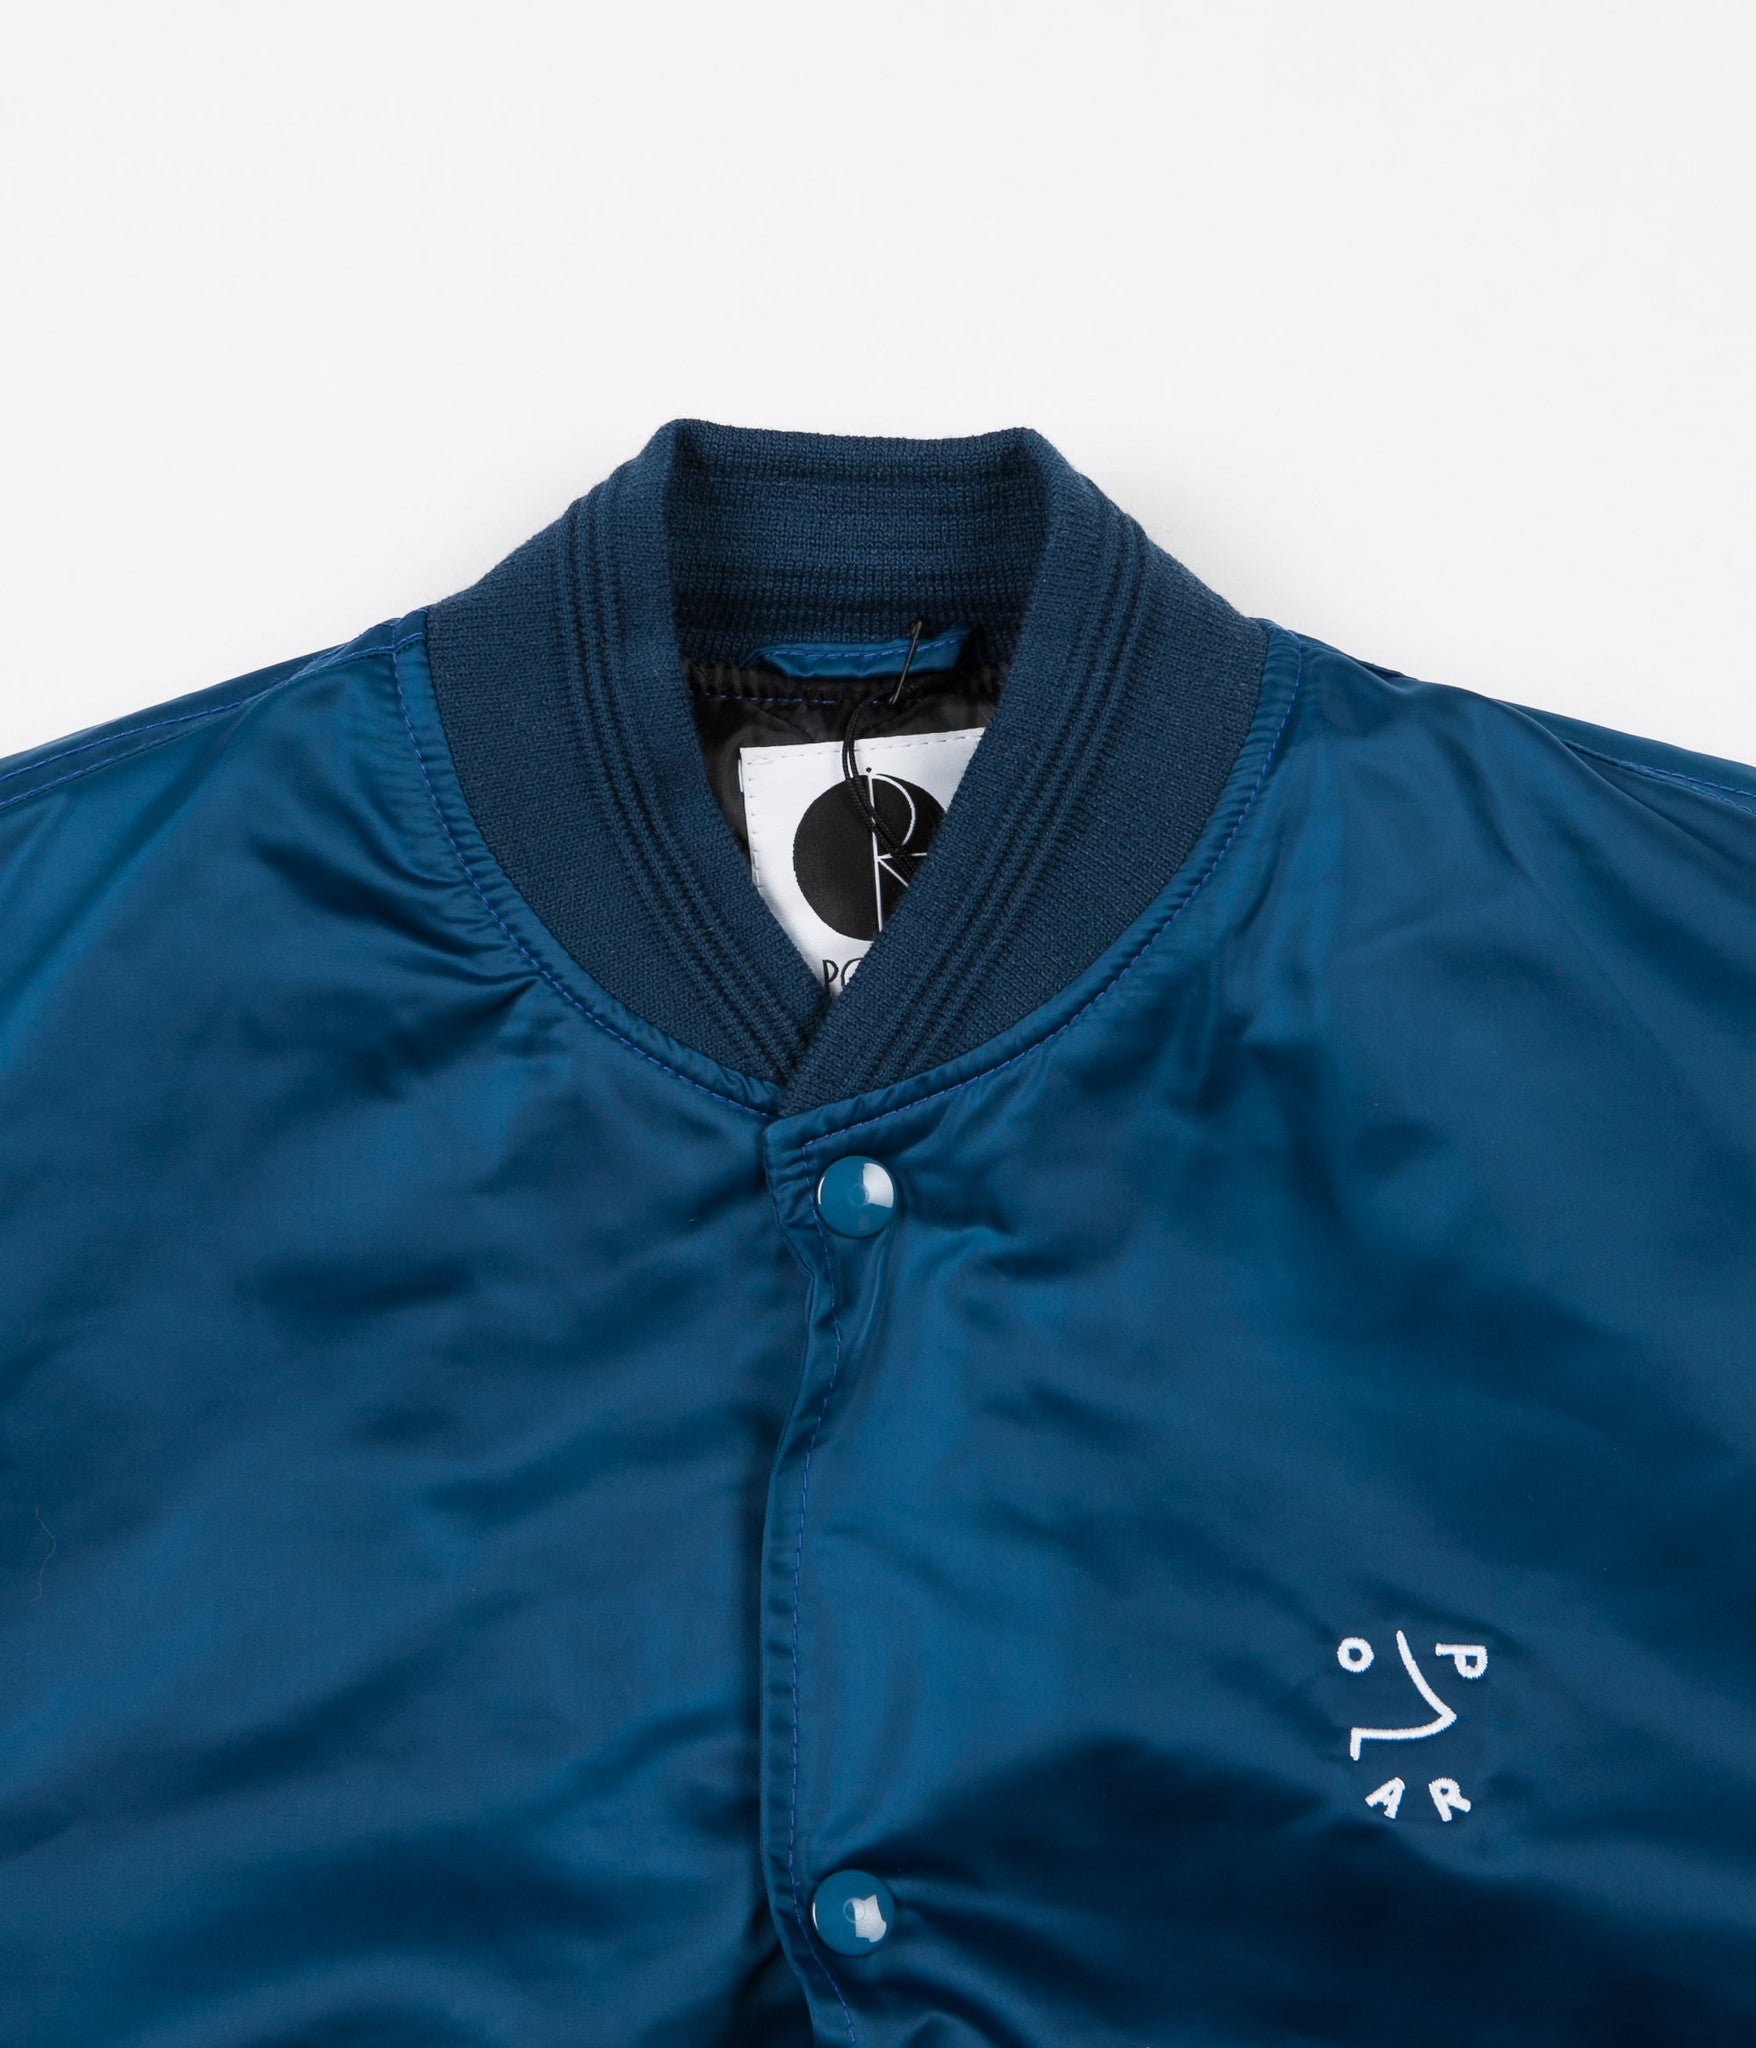 Polar College Jacket - Petrol Blue